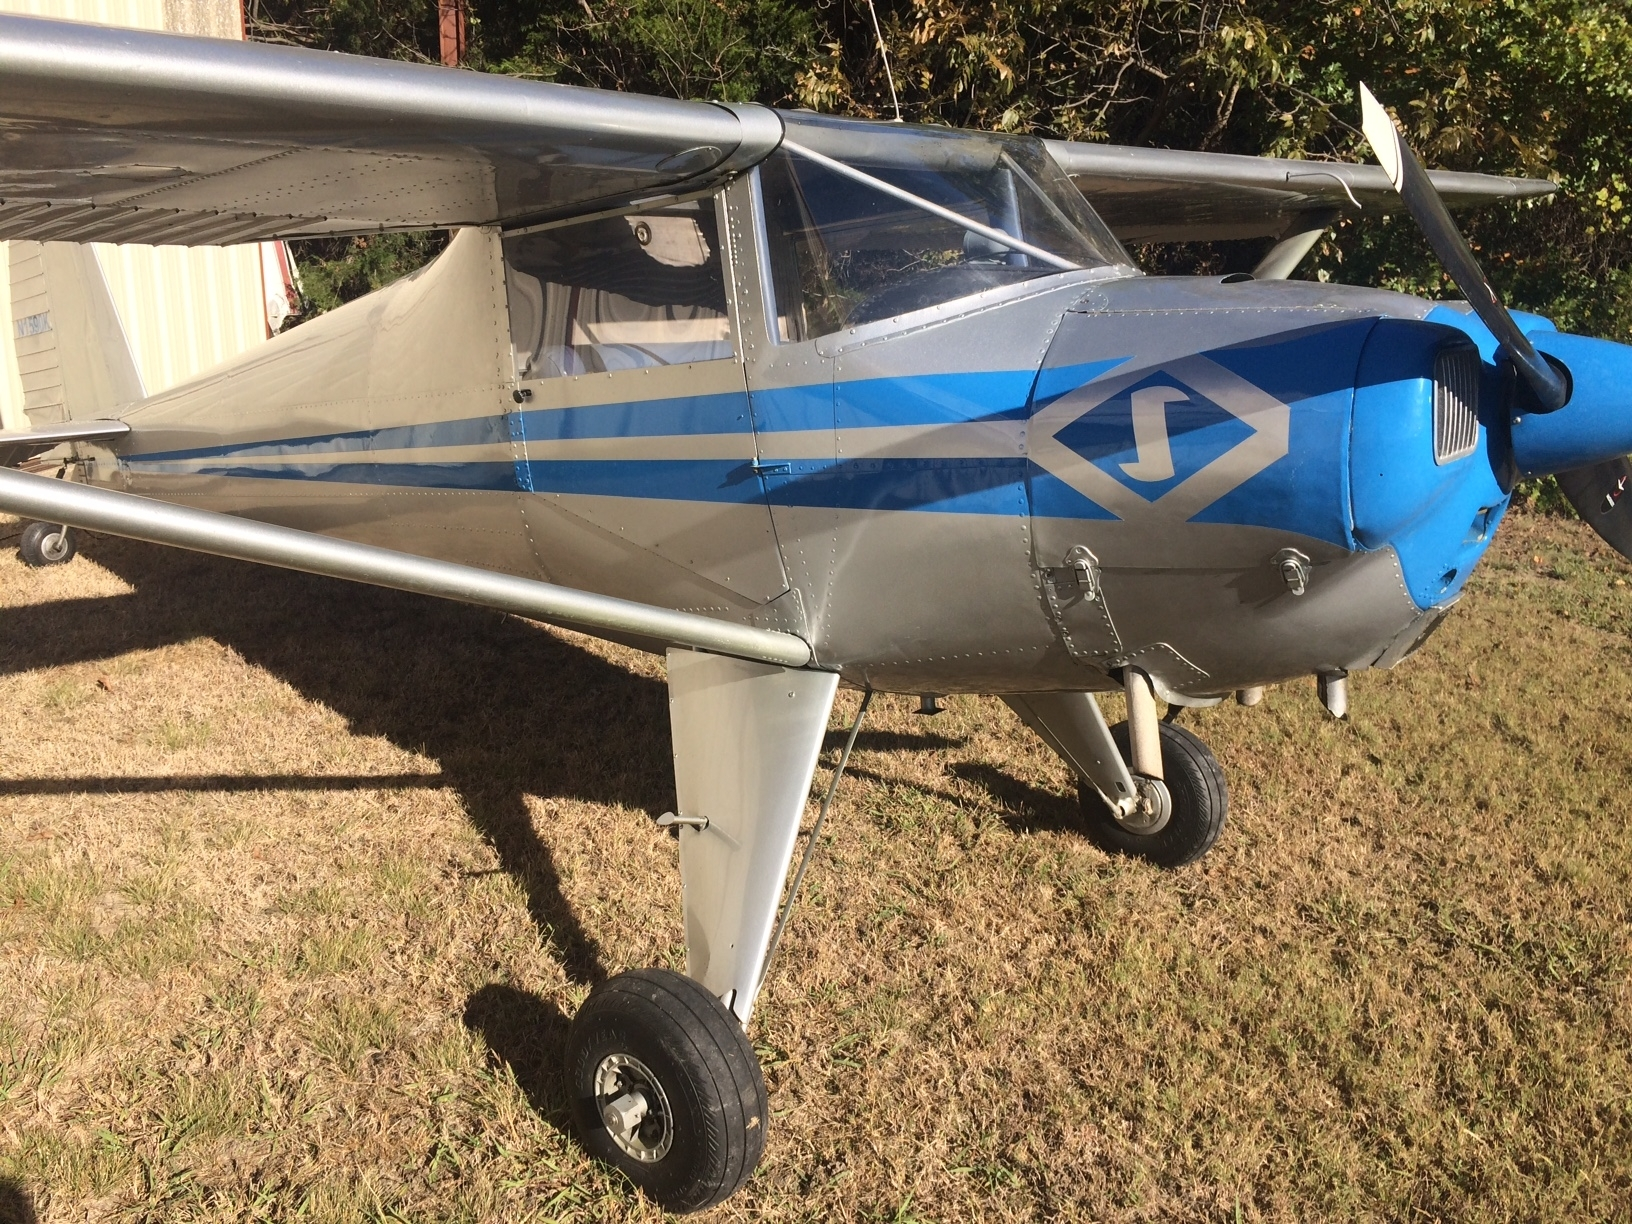 LadiesLoveTaildraggers | 1946 LUSCOMBE 8A LSA $22,500 For Sale